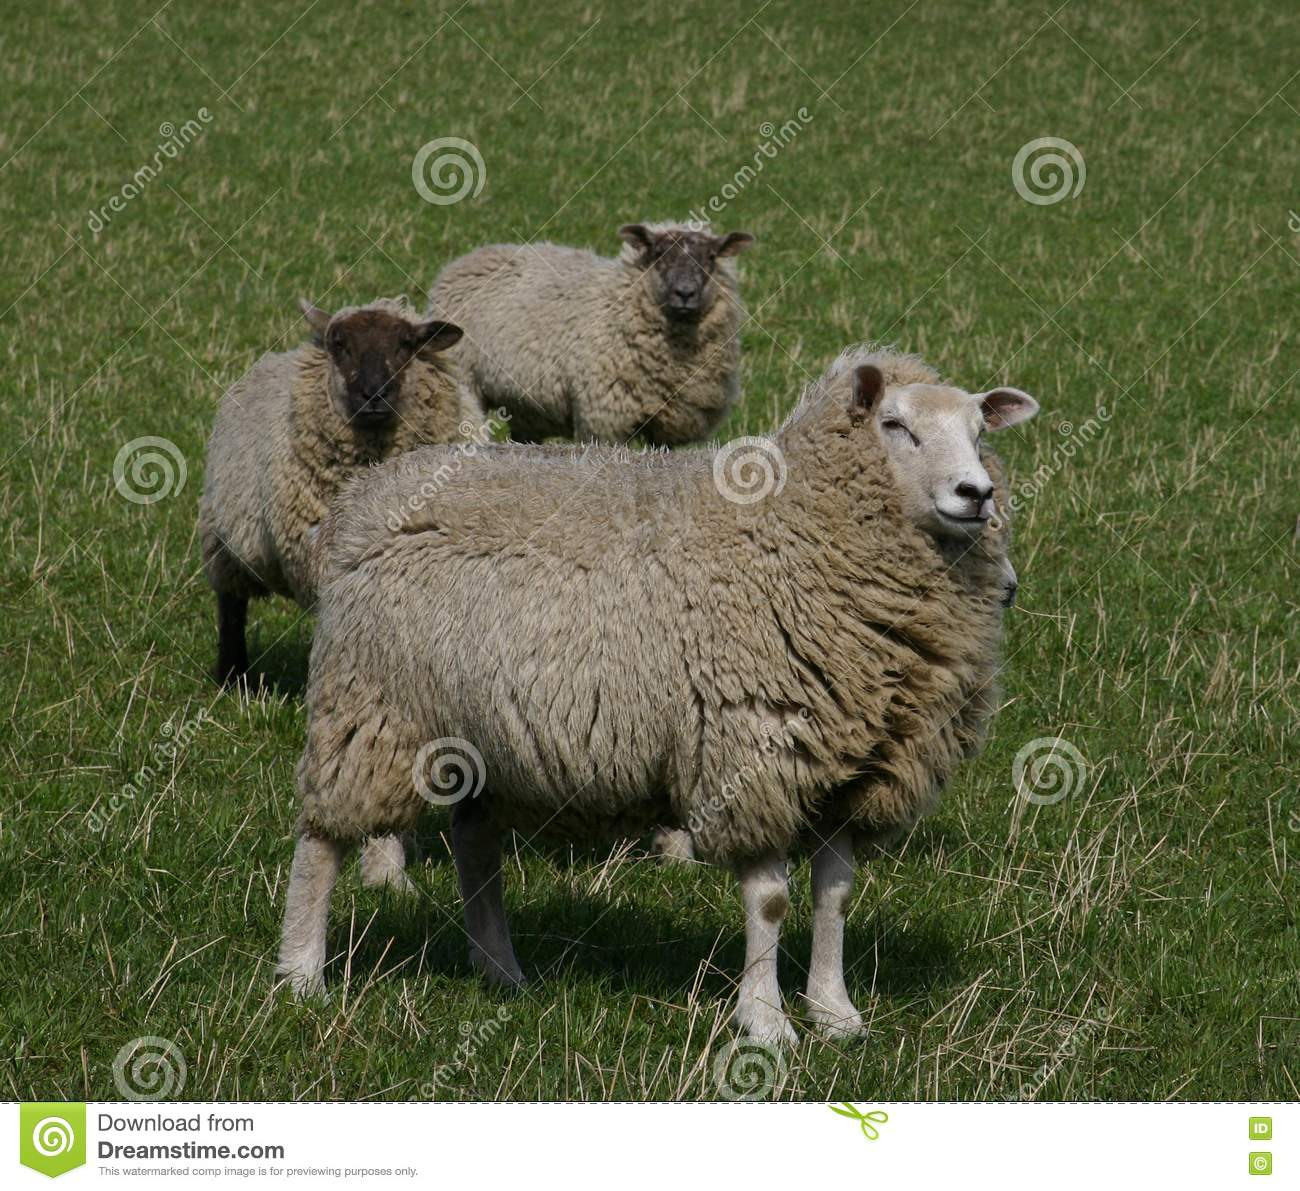 Stock Photography Sheep Picture Image 638322